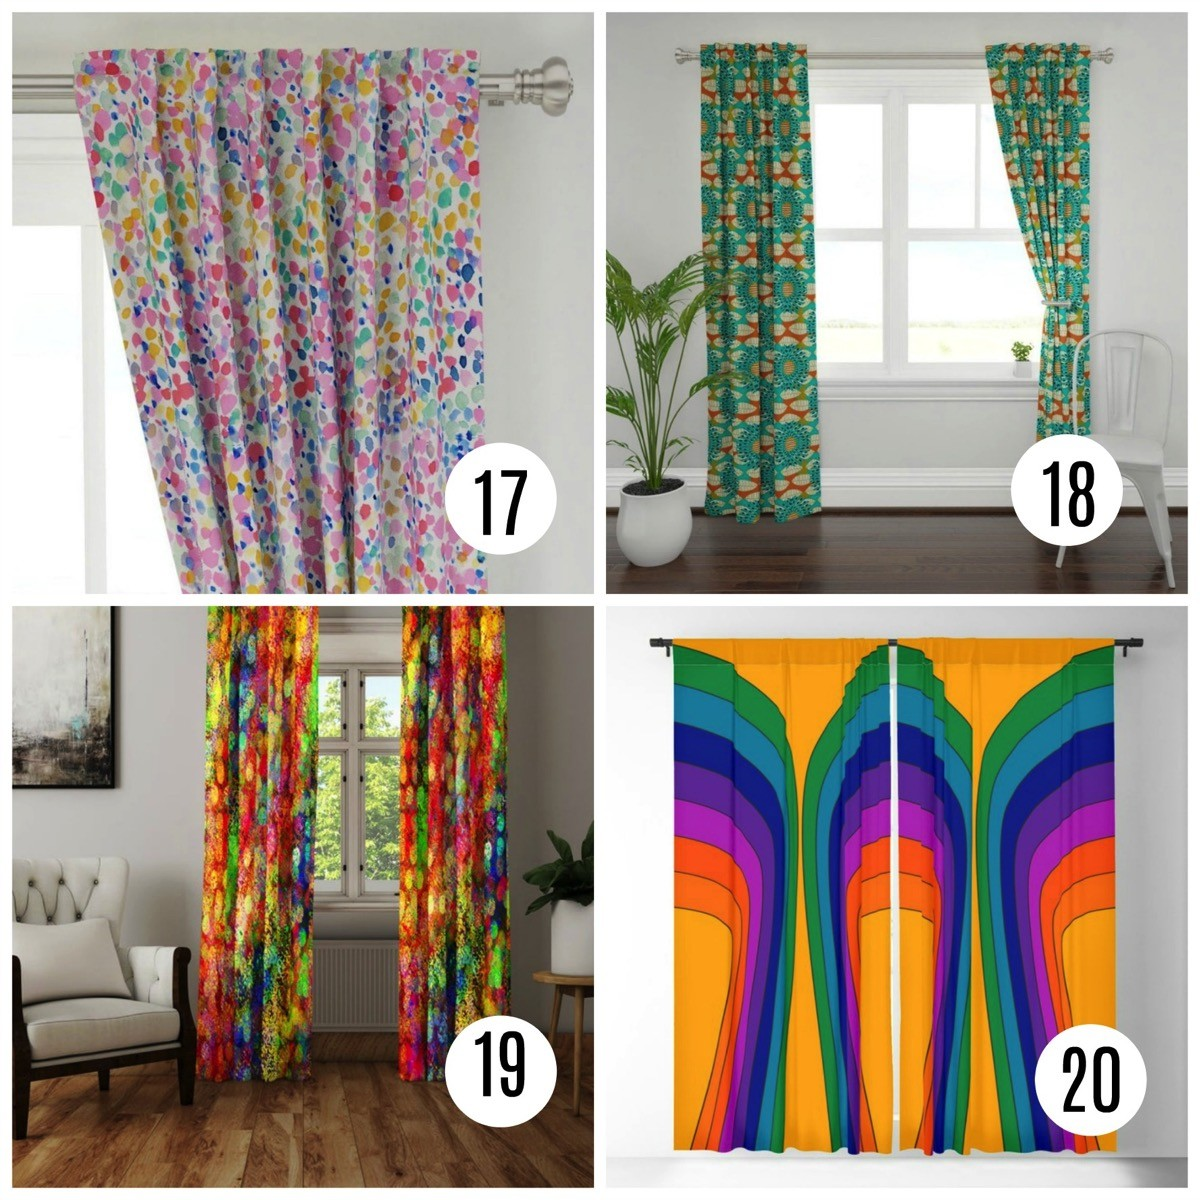 Colorful window curtains maximalist